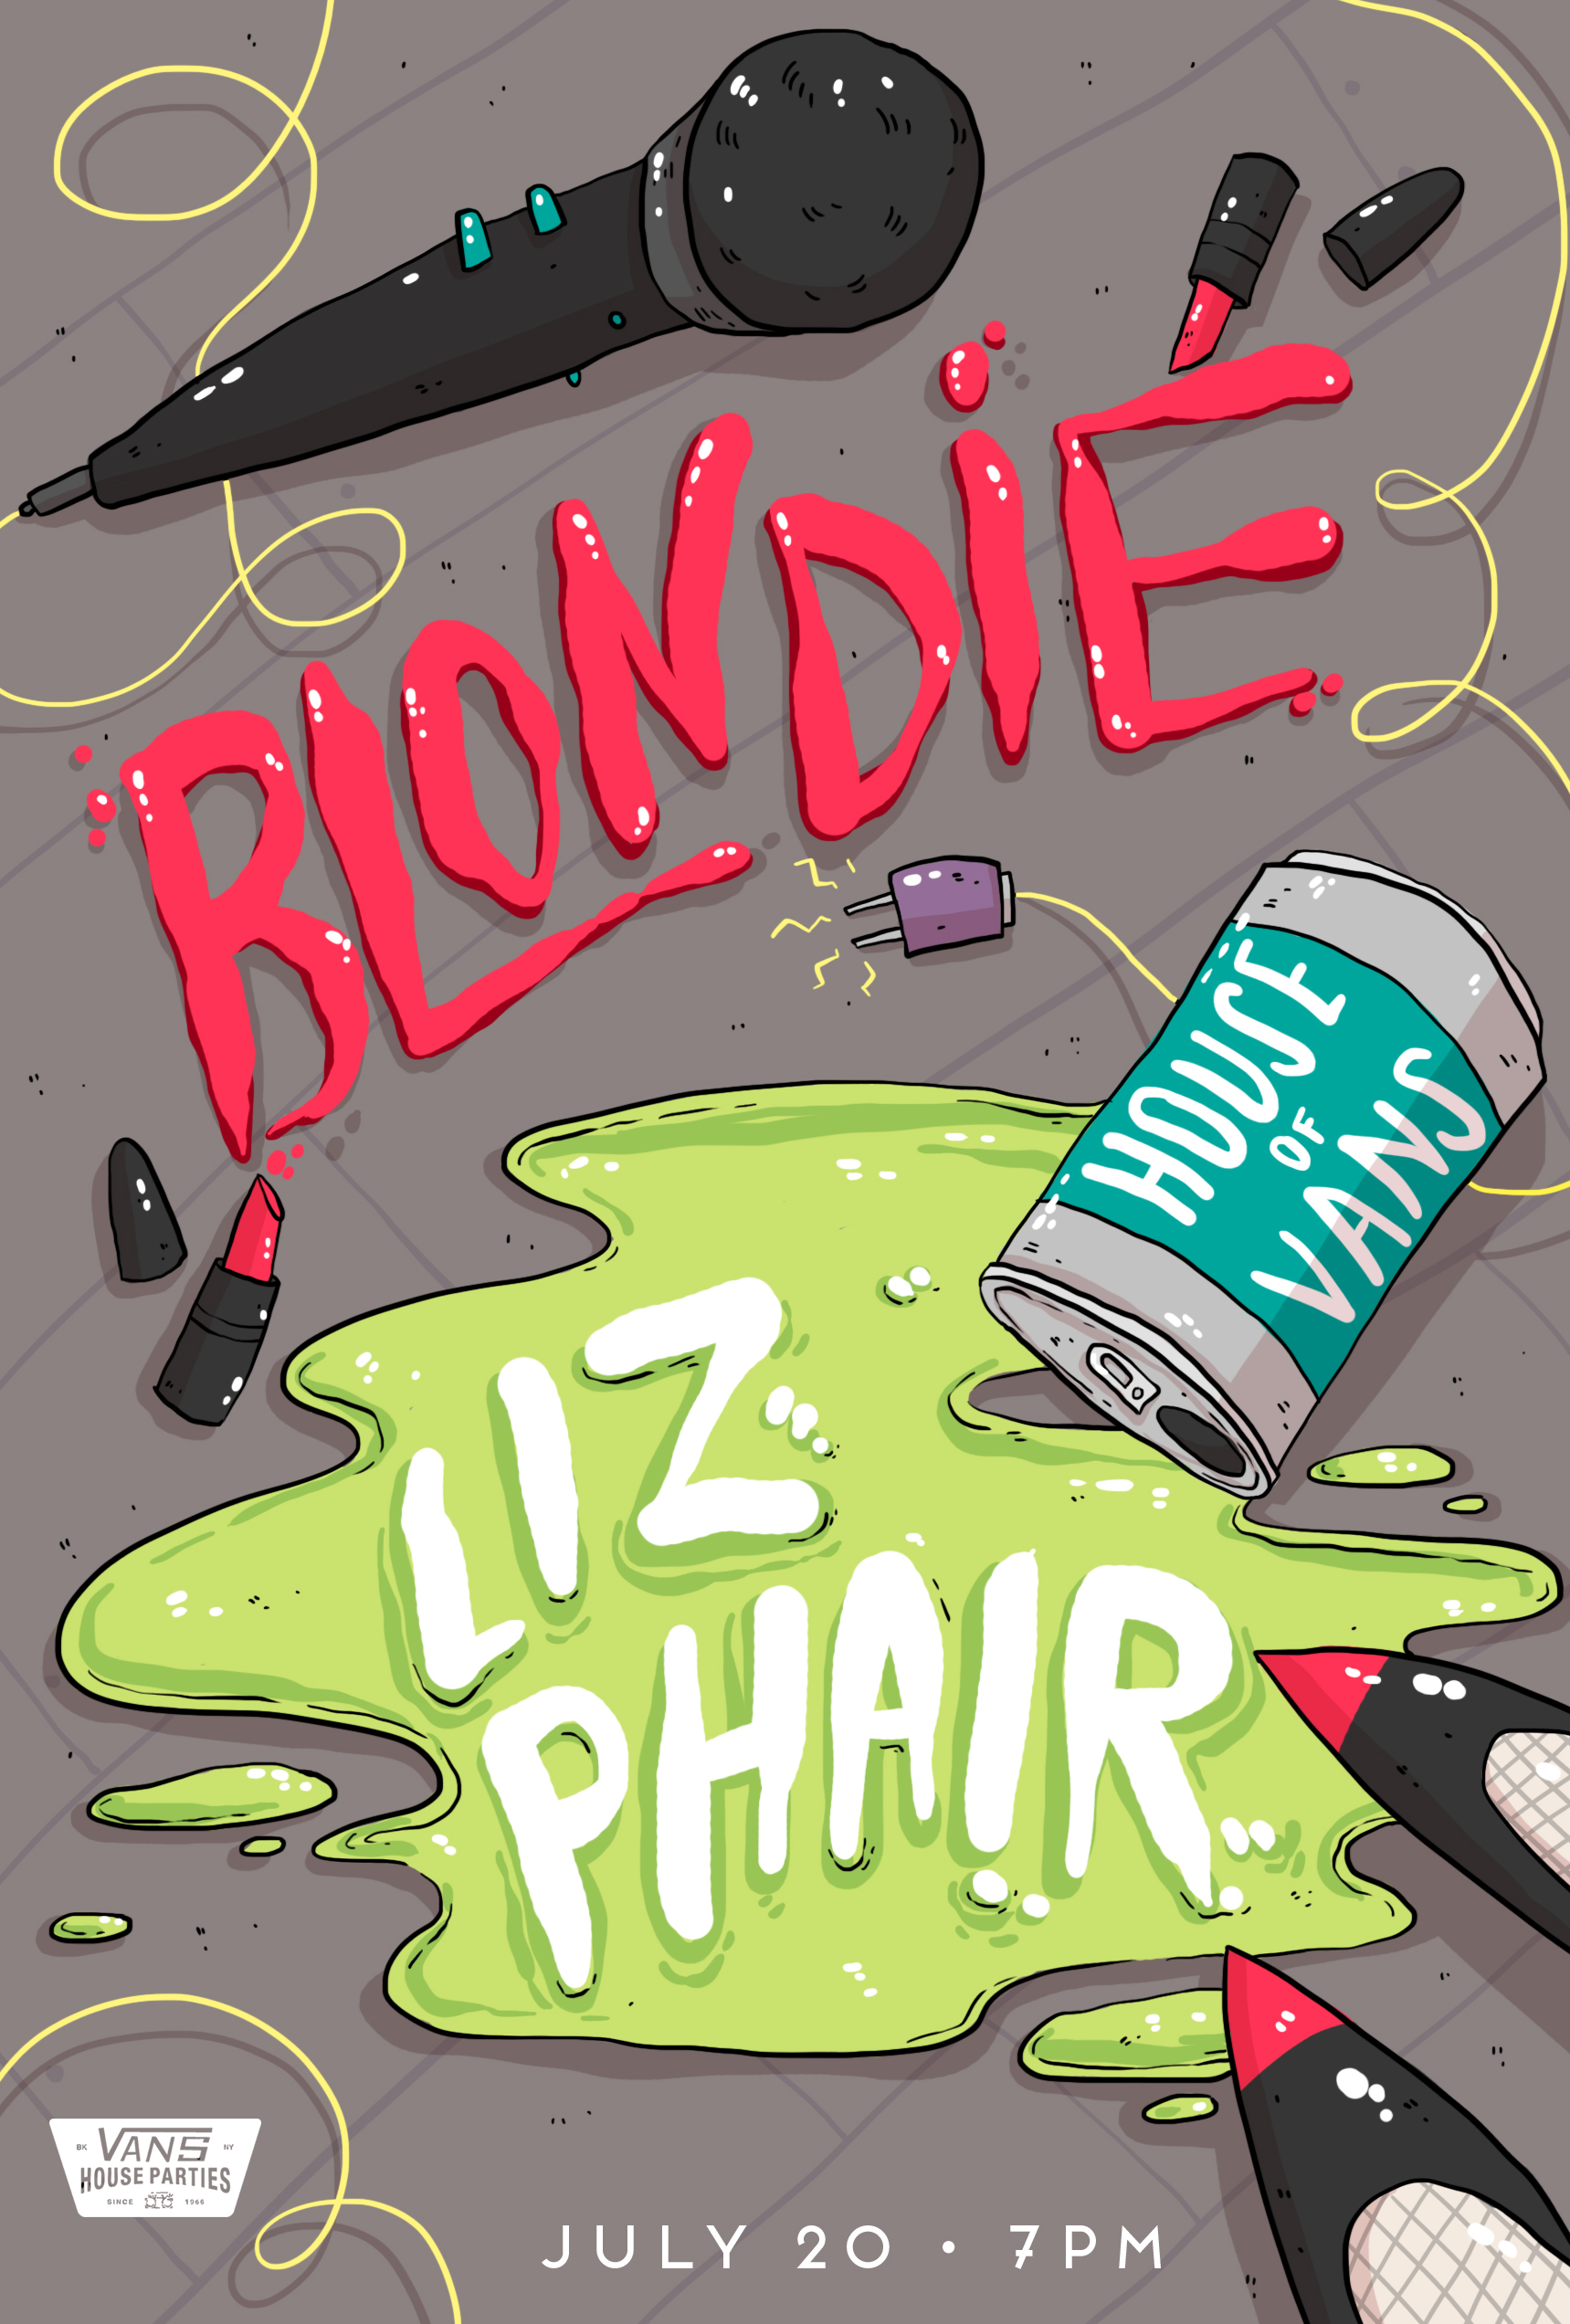 Blondie x Liz Phair